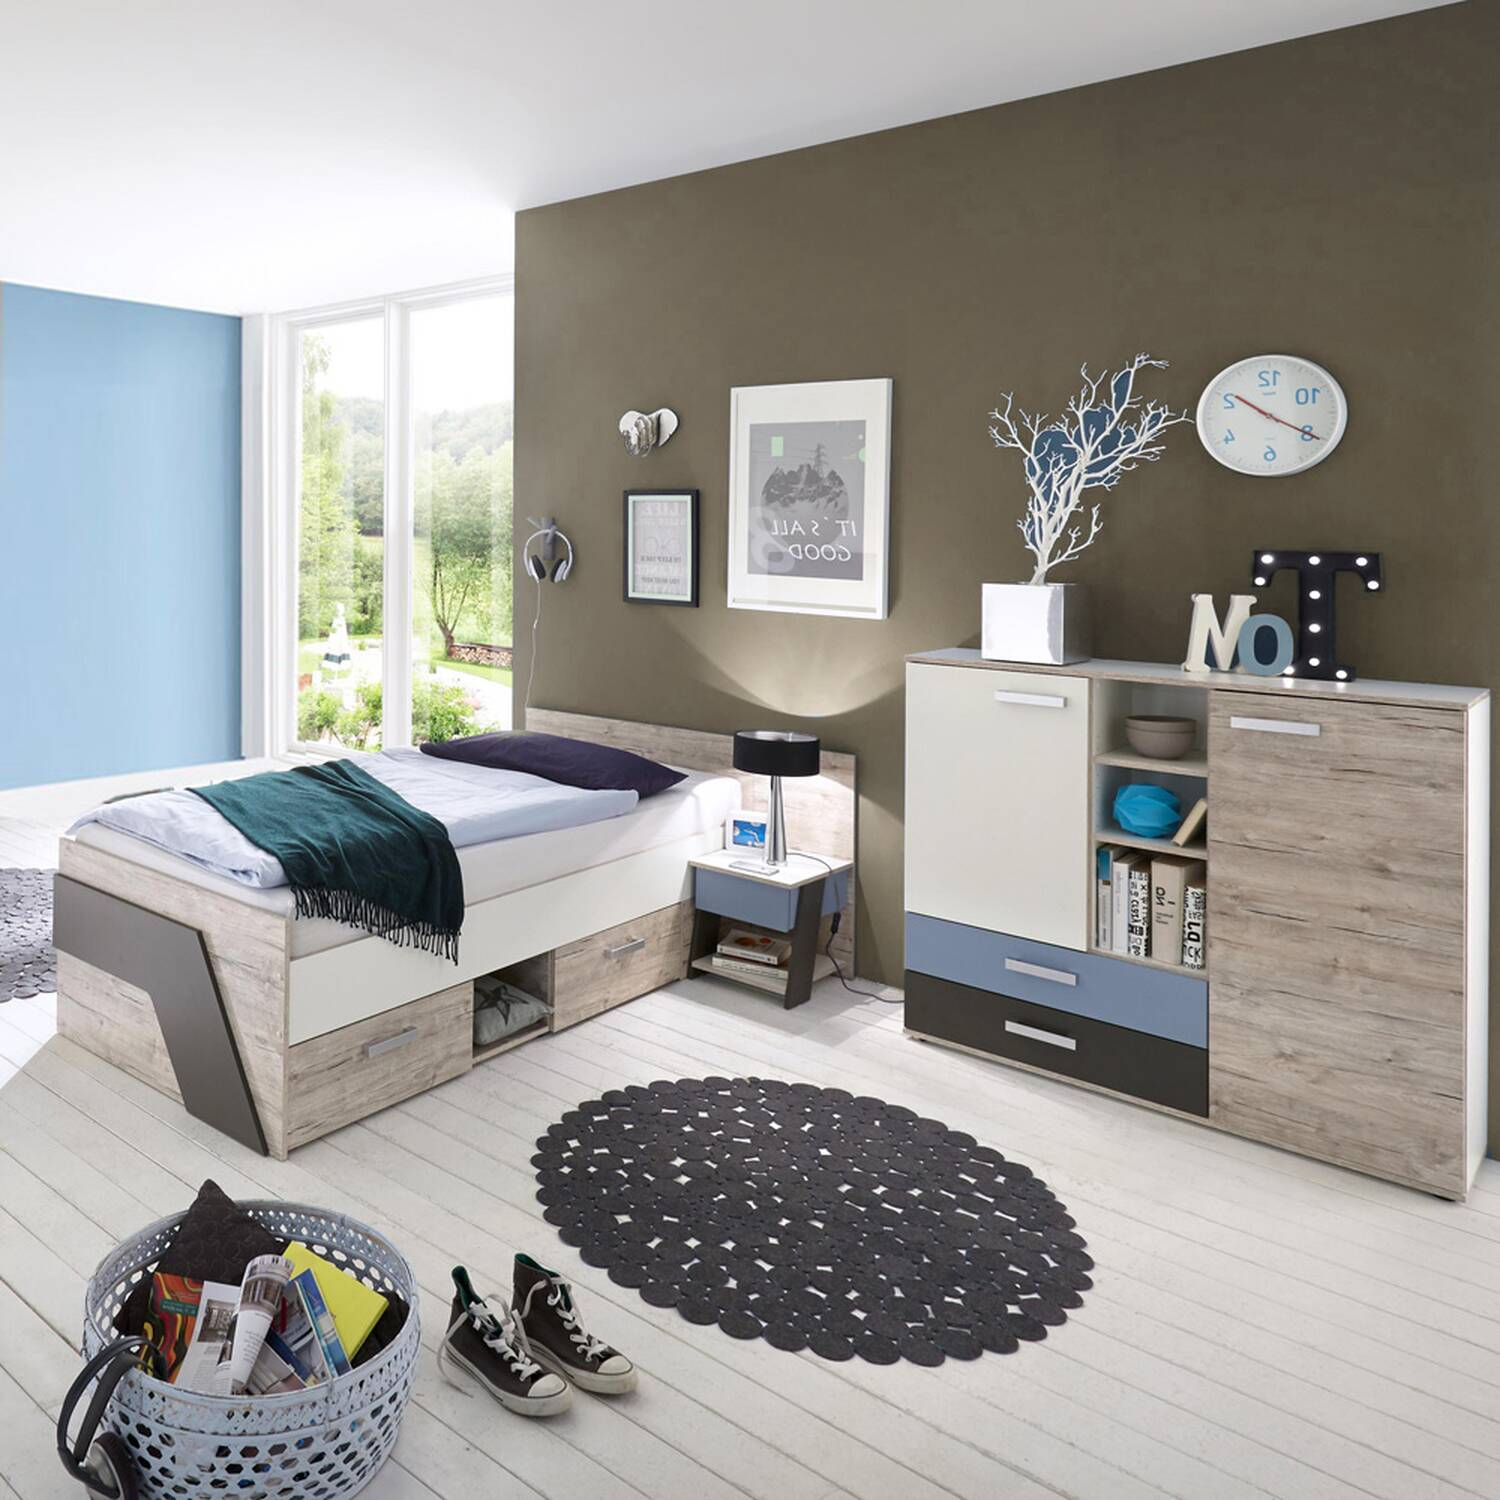 jugendzimmer set mit kommode 3 teilig leeds 10 in sandeiche nb mit wei lava und denim blau. Black Bedroom Furniture Sets. Home Design Ideas